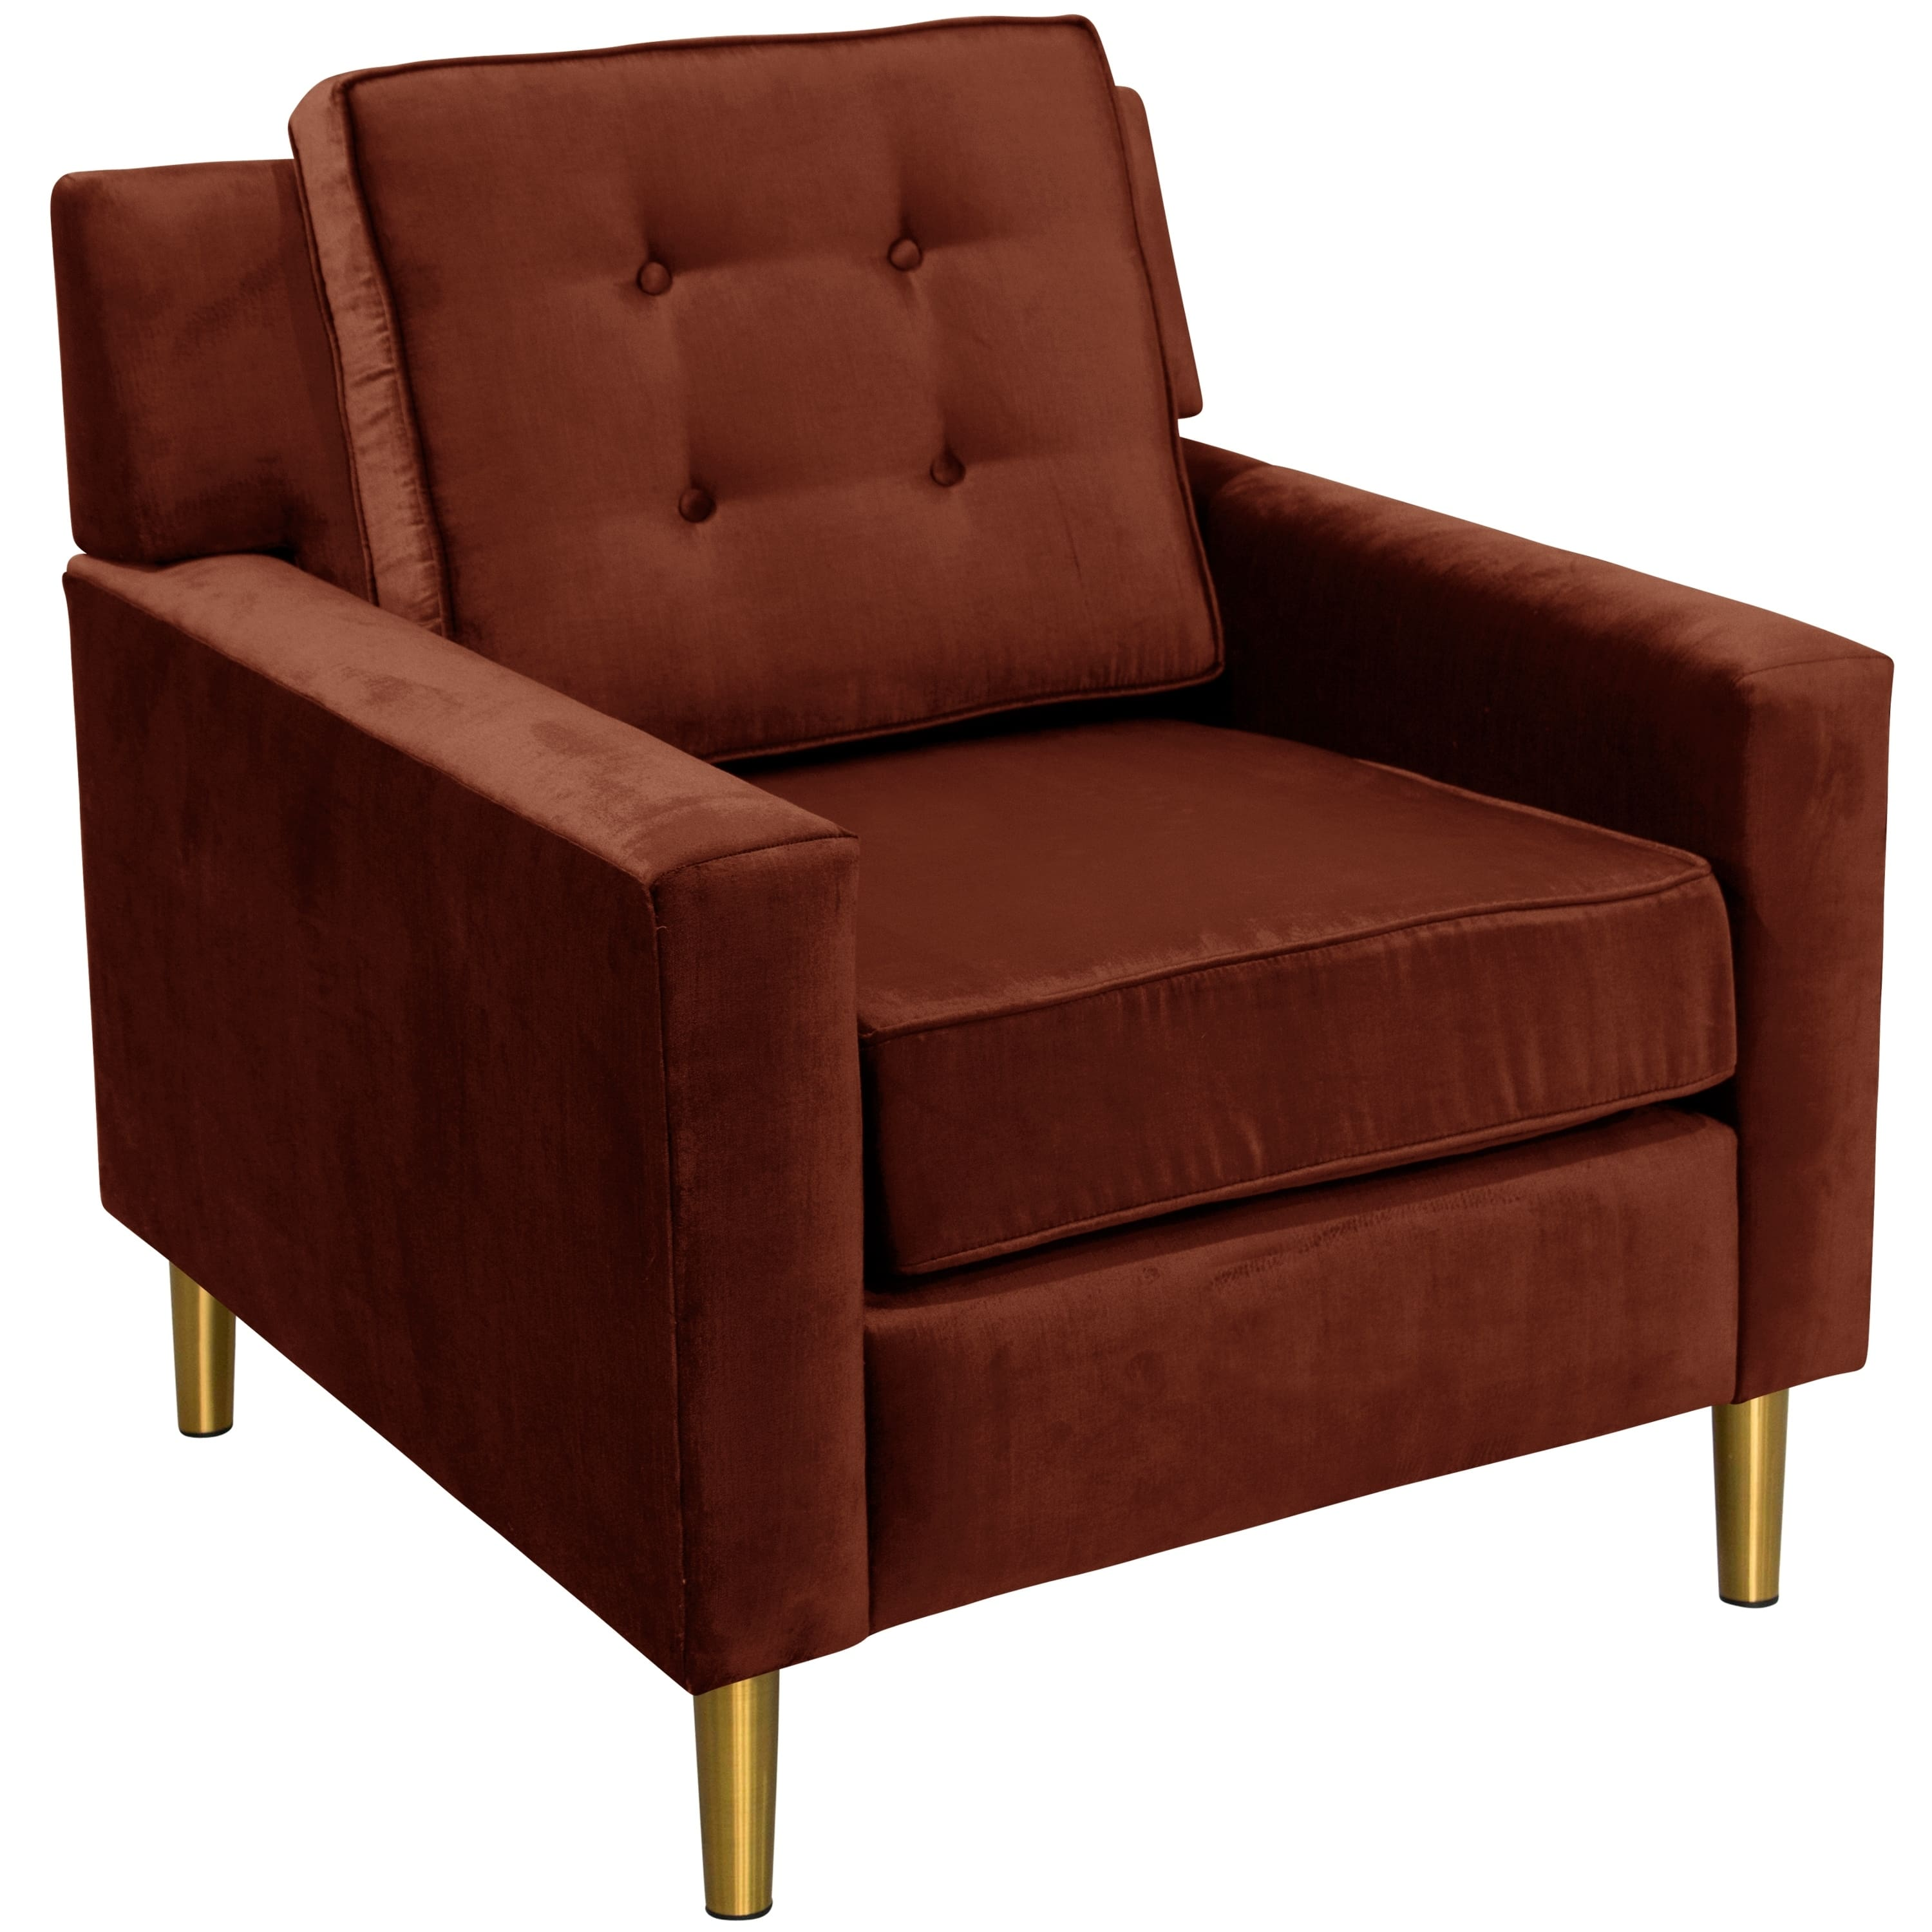 majestic accent chairs for living room. Get free high quality HD wallpapers majestic accent chairs for living room www